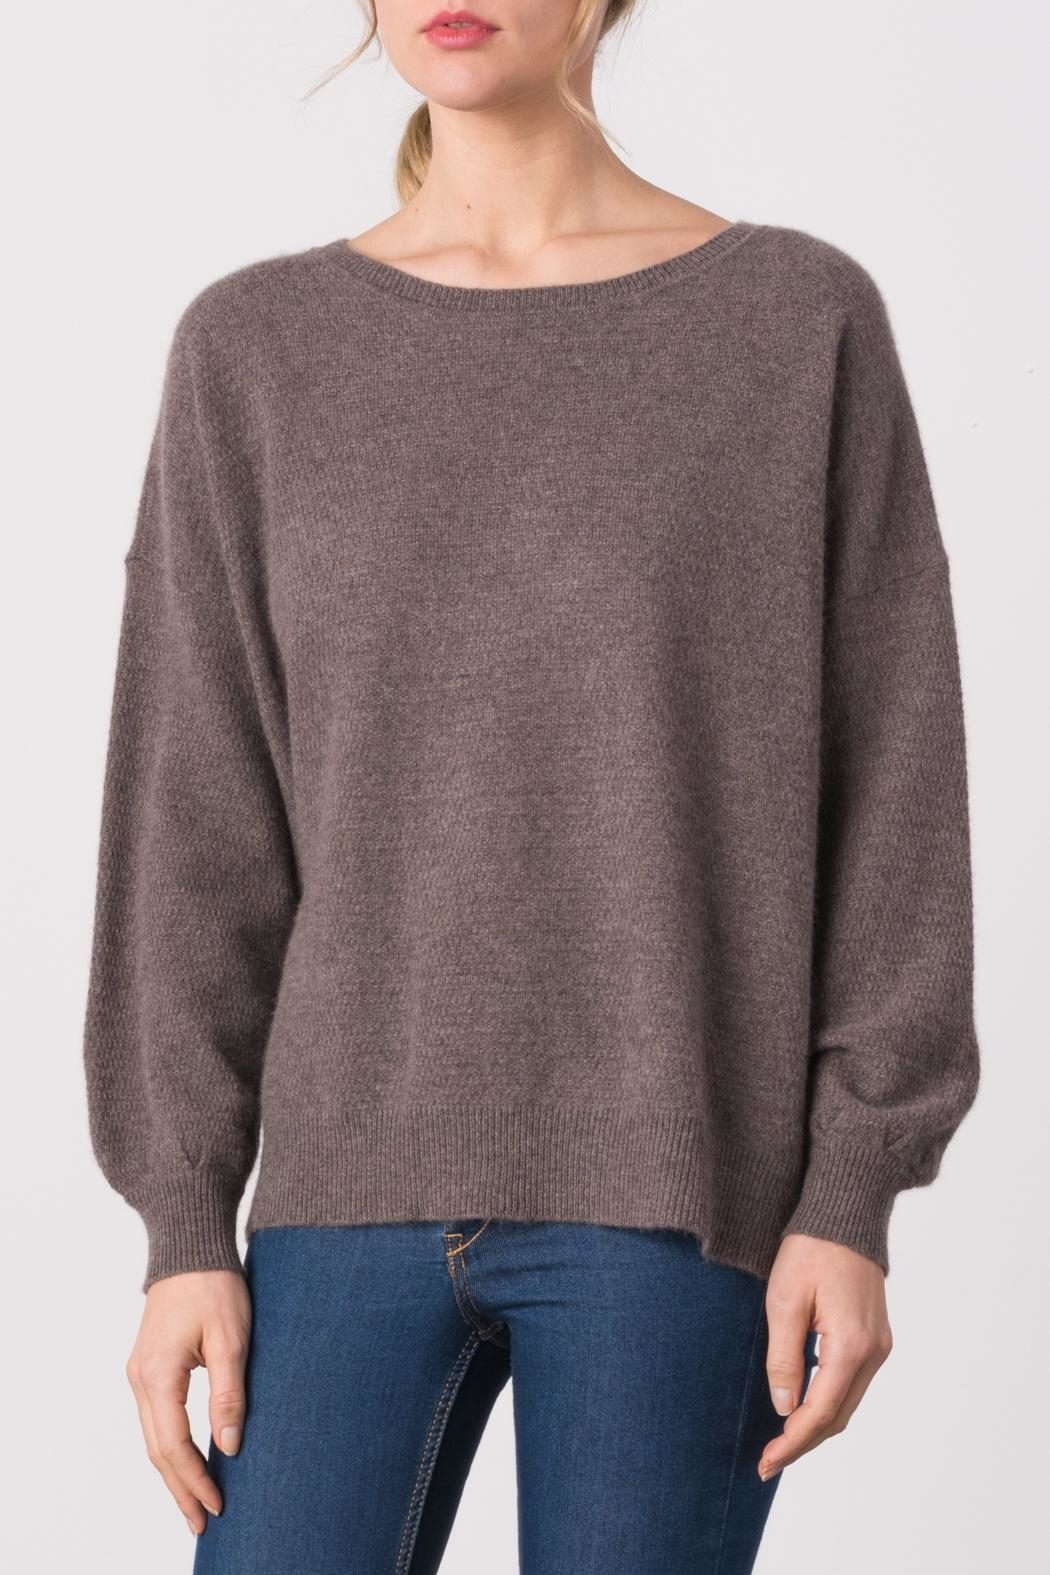 Margaret O'Leary Naya Pullover Top - Main Image